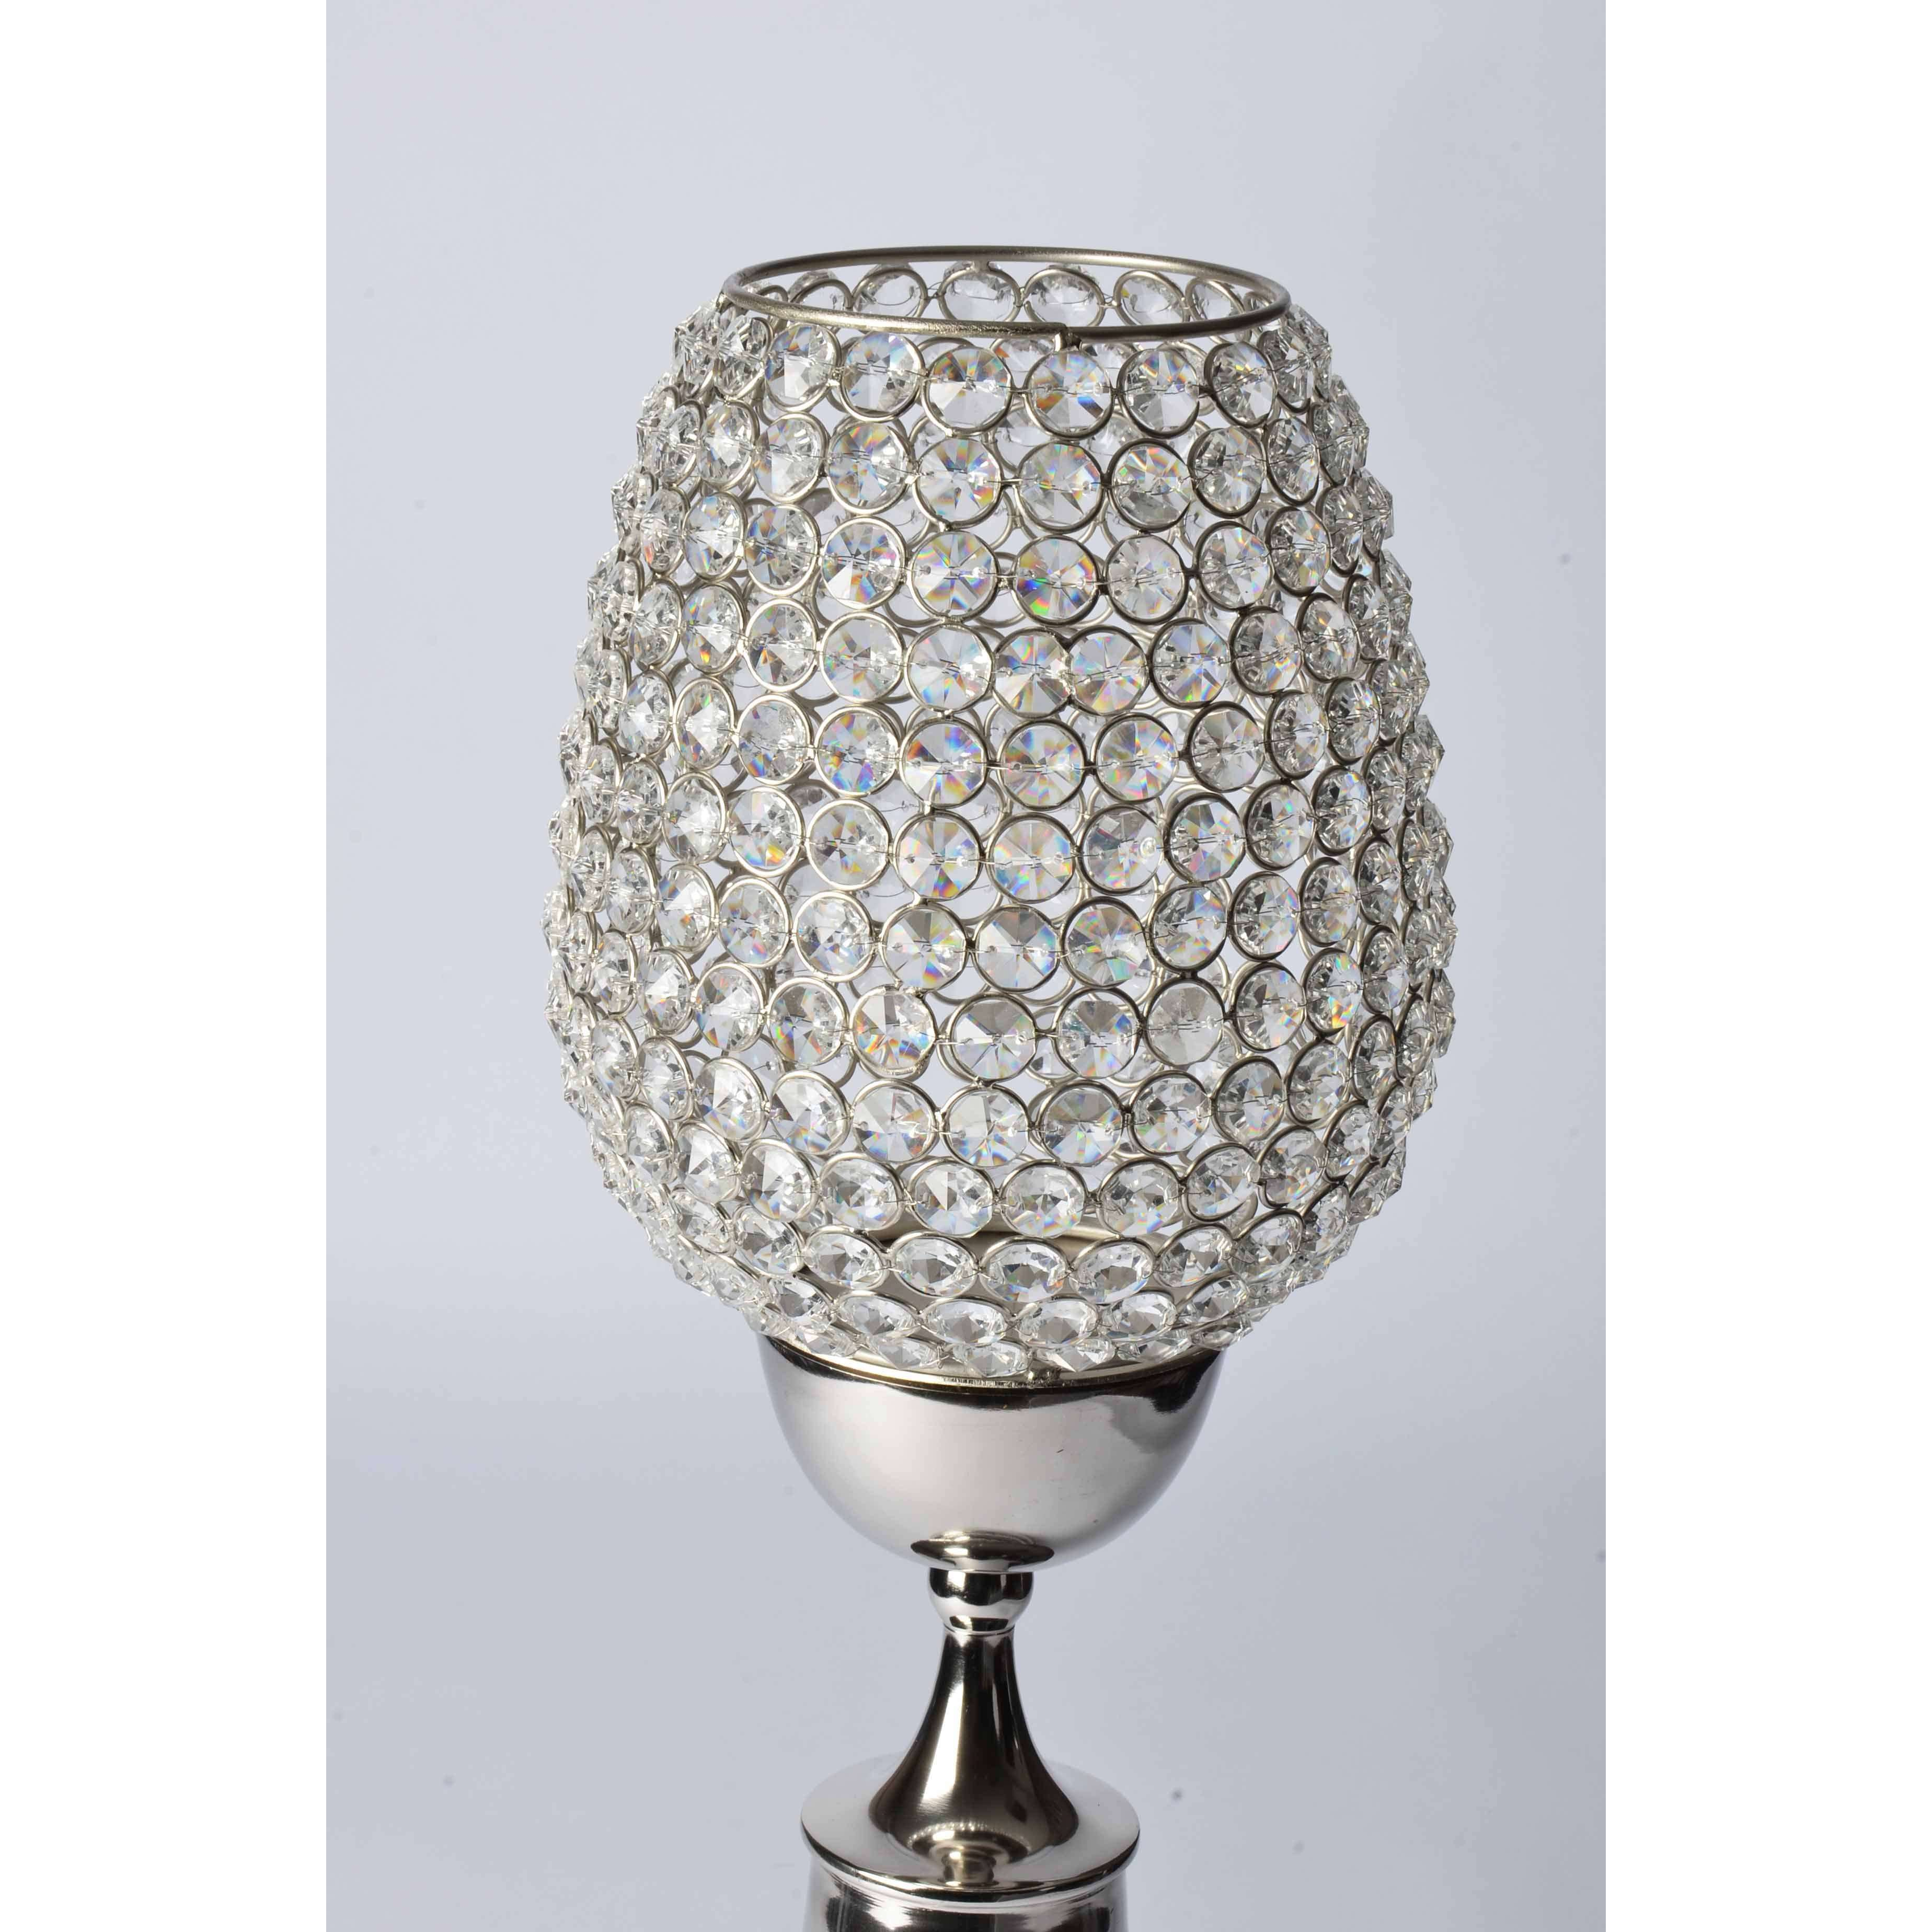 Abner - Crystals Candle Holder- Classic Stand with Goblet Simply Roka